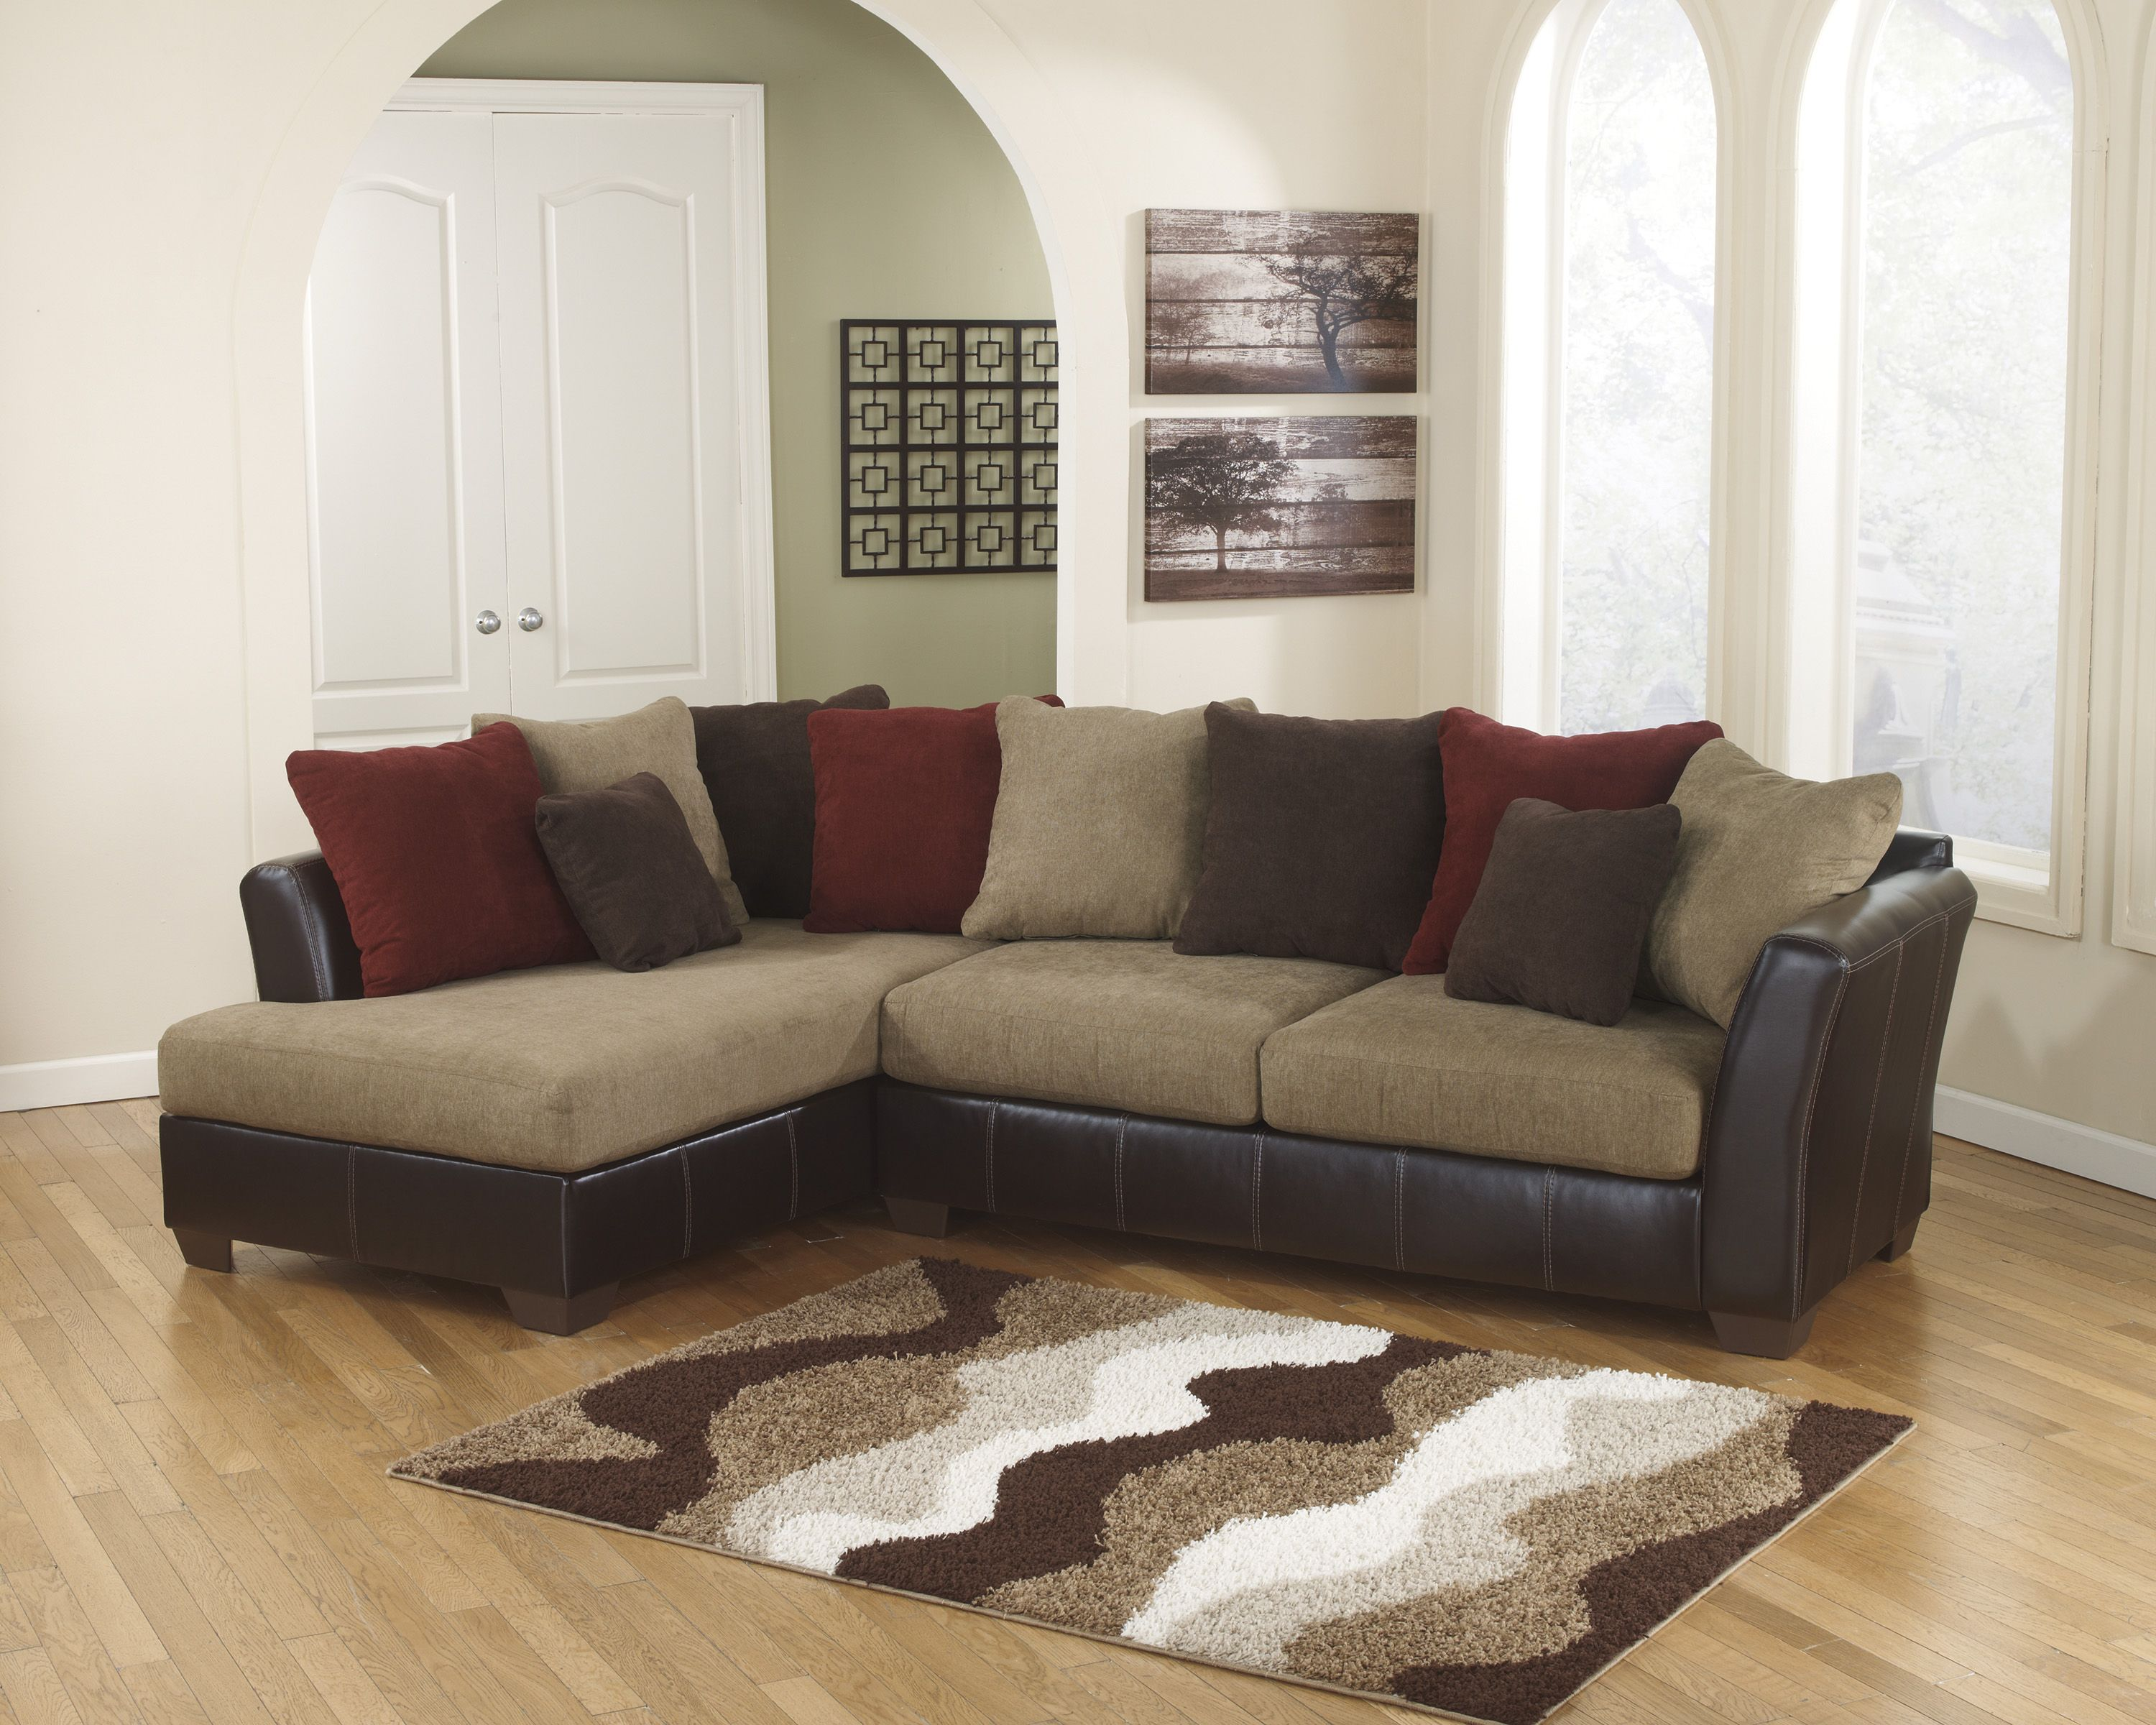 The Chaise Lounge On The Sanya Sectional Can Be Ordered On Either Side Of The Set Ashley Furniture Sectional Furniture Ashley Furniture